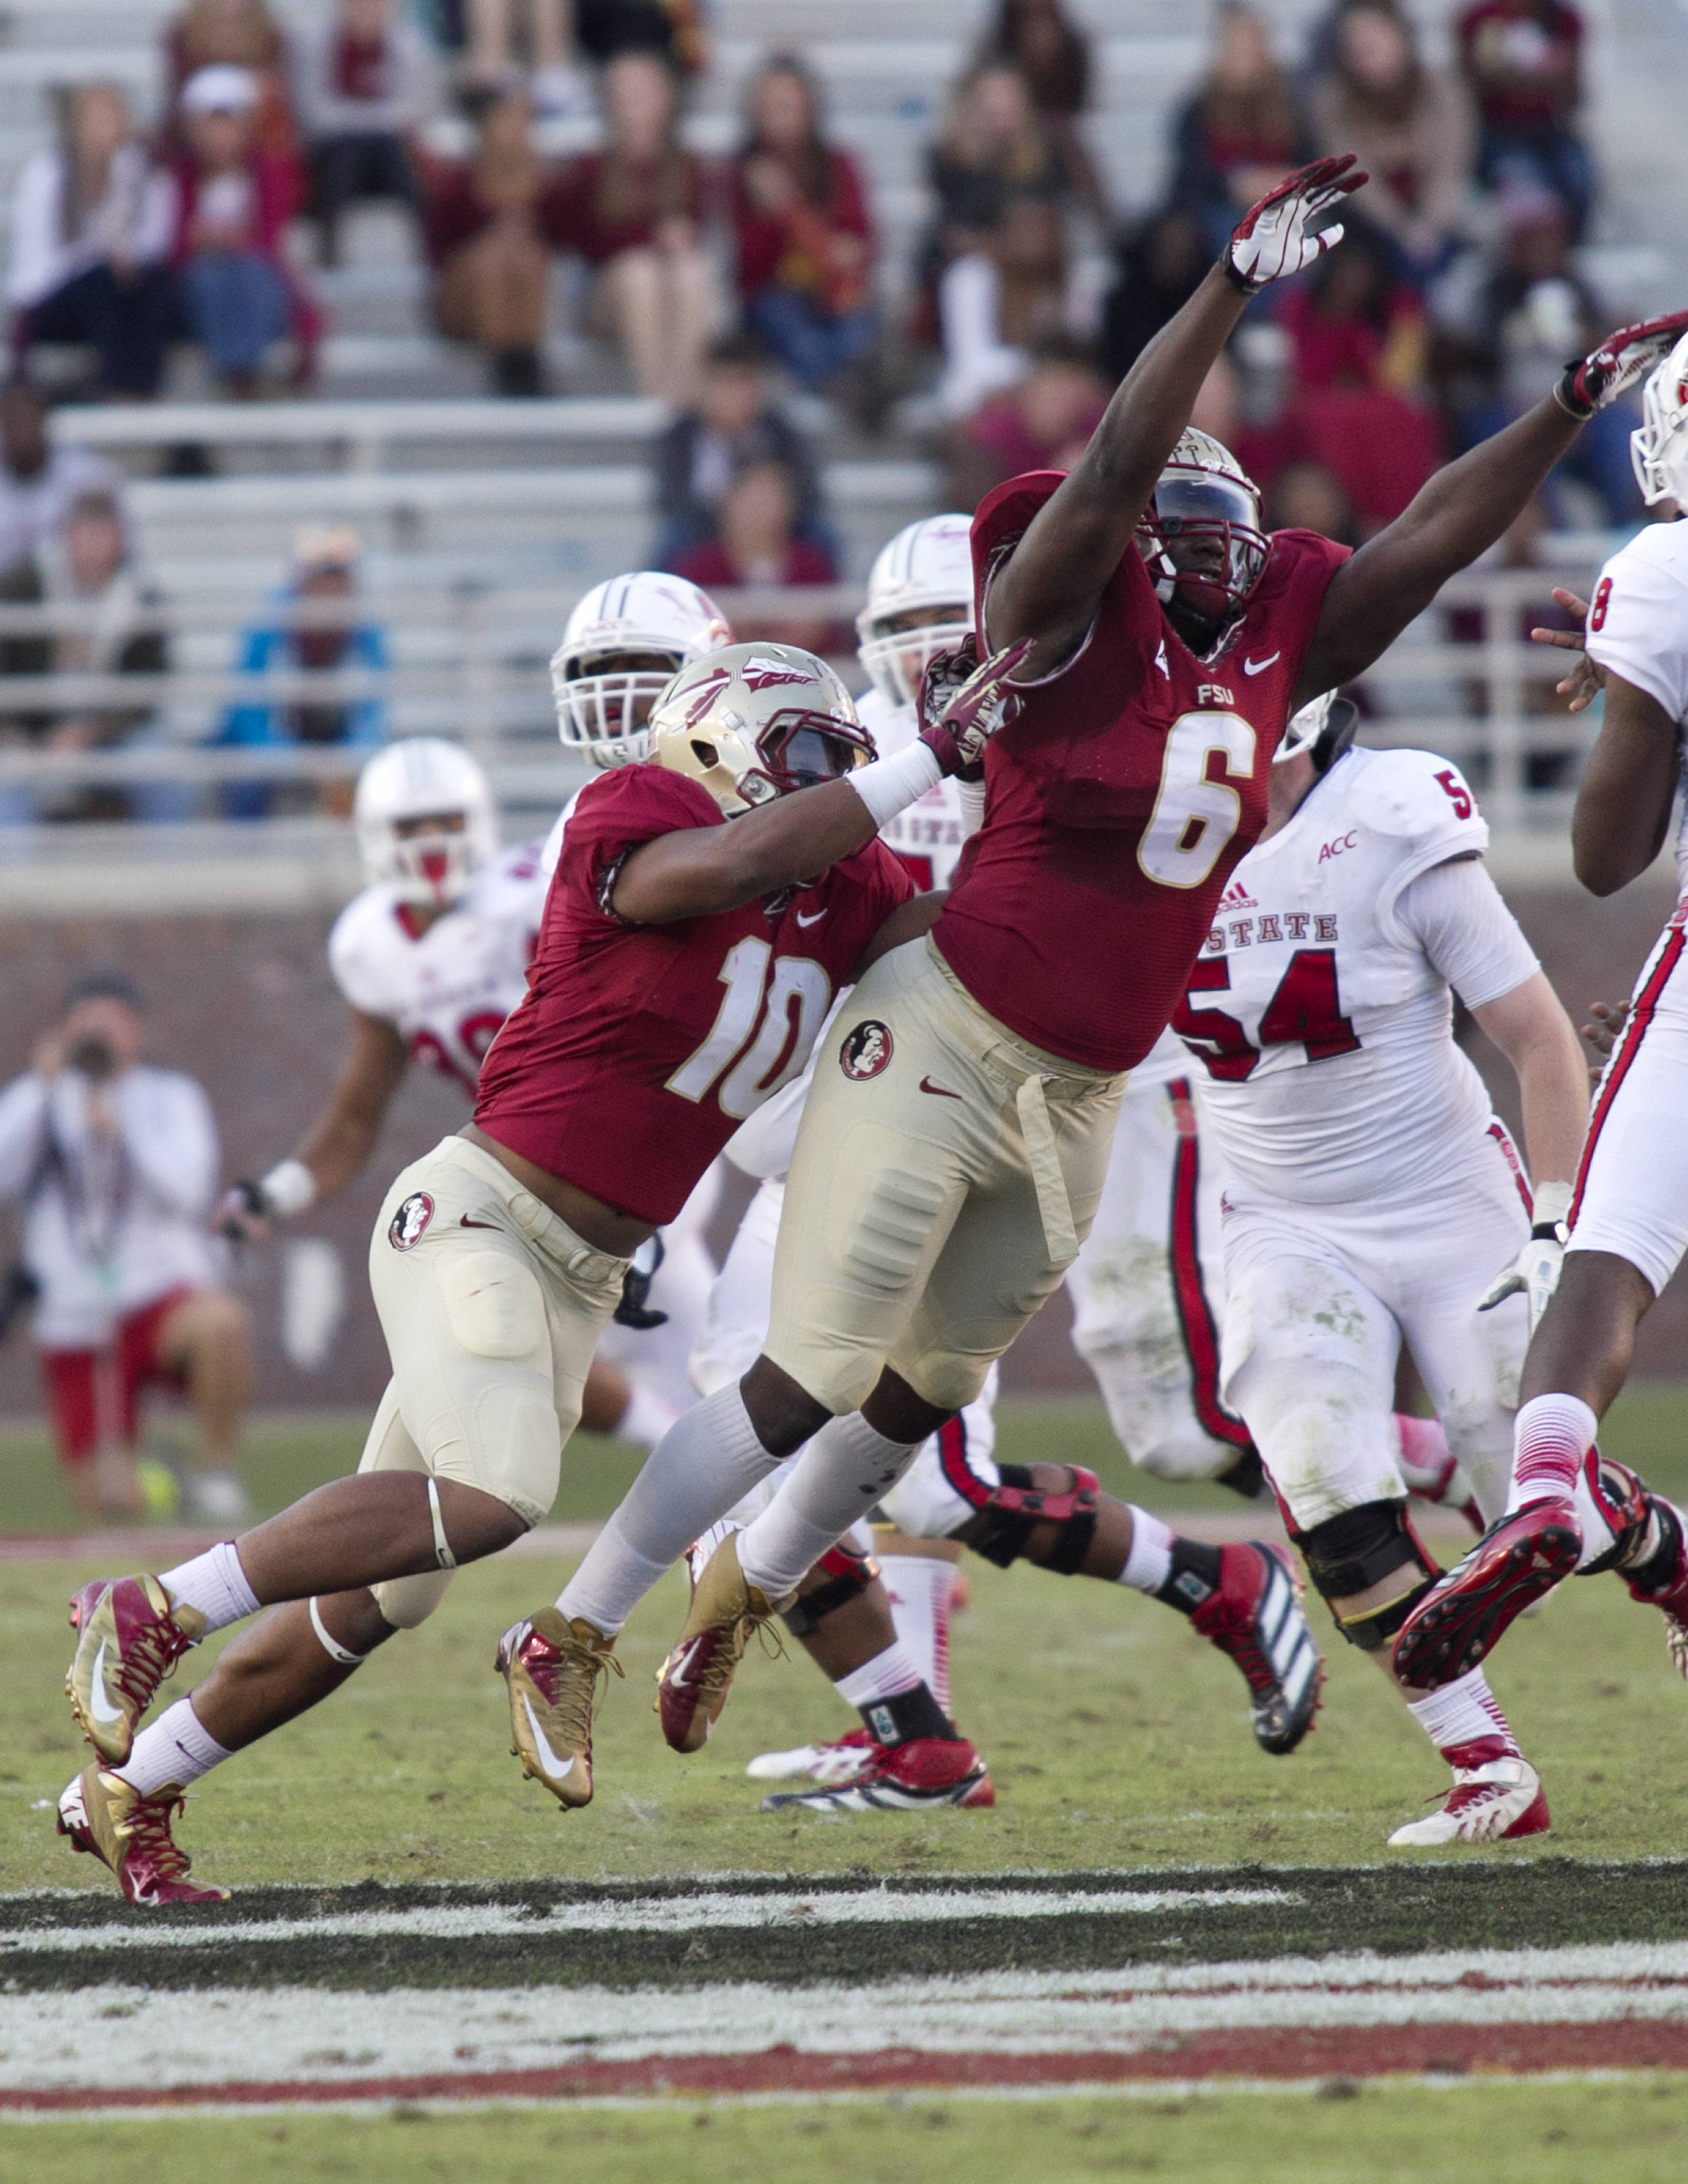 Dan Hicks (6), E.J. Levenberry (10), FSU vs NC State,  10-26-13, (Photo by Steve Musco)